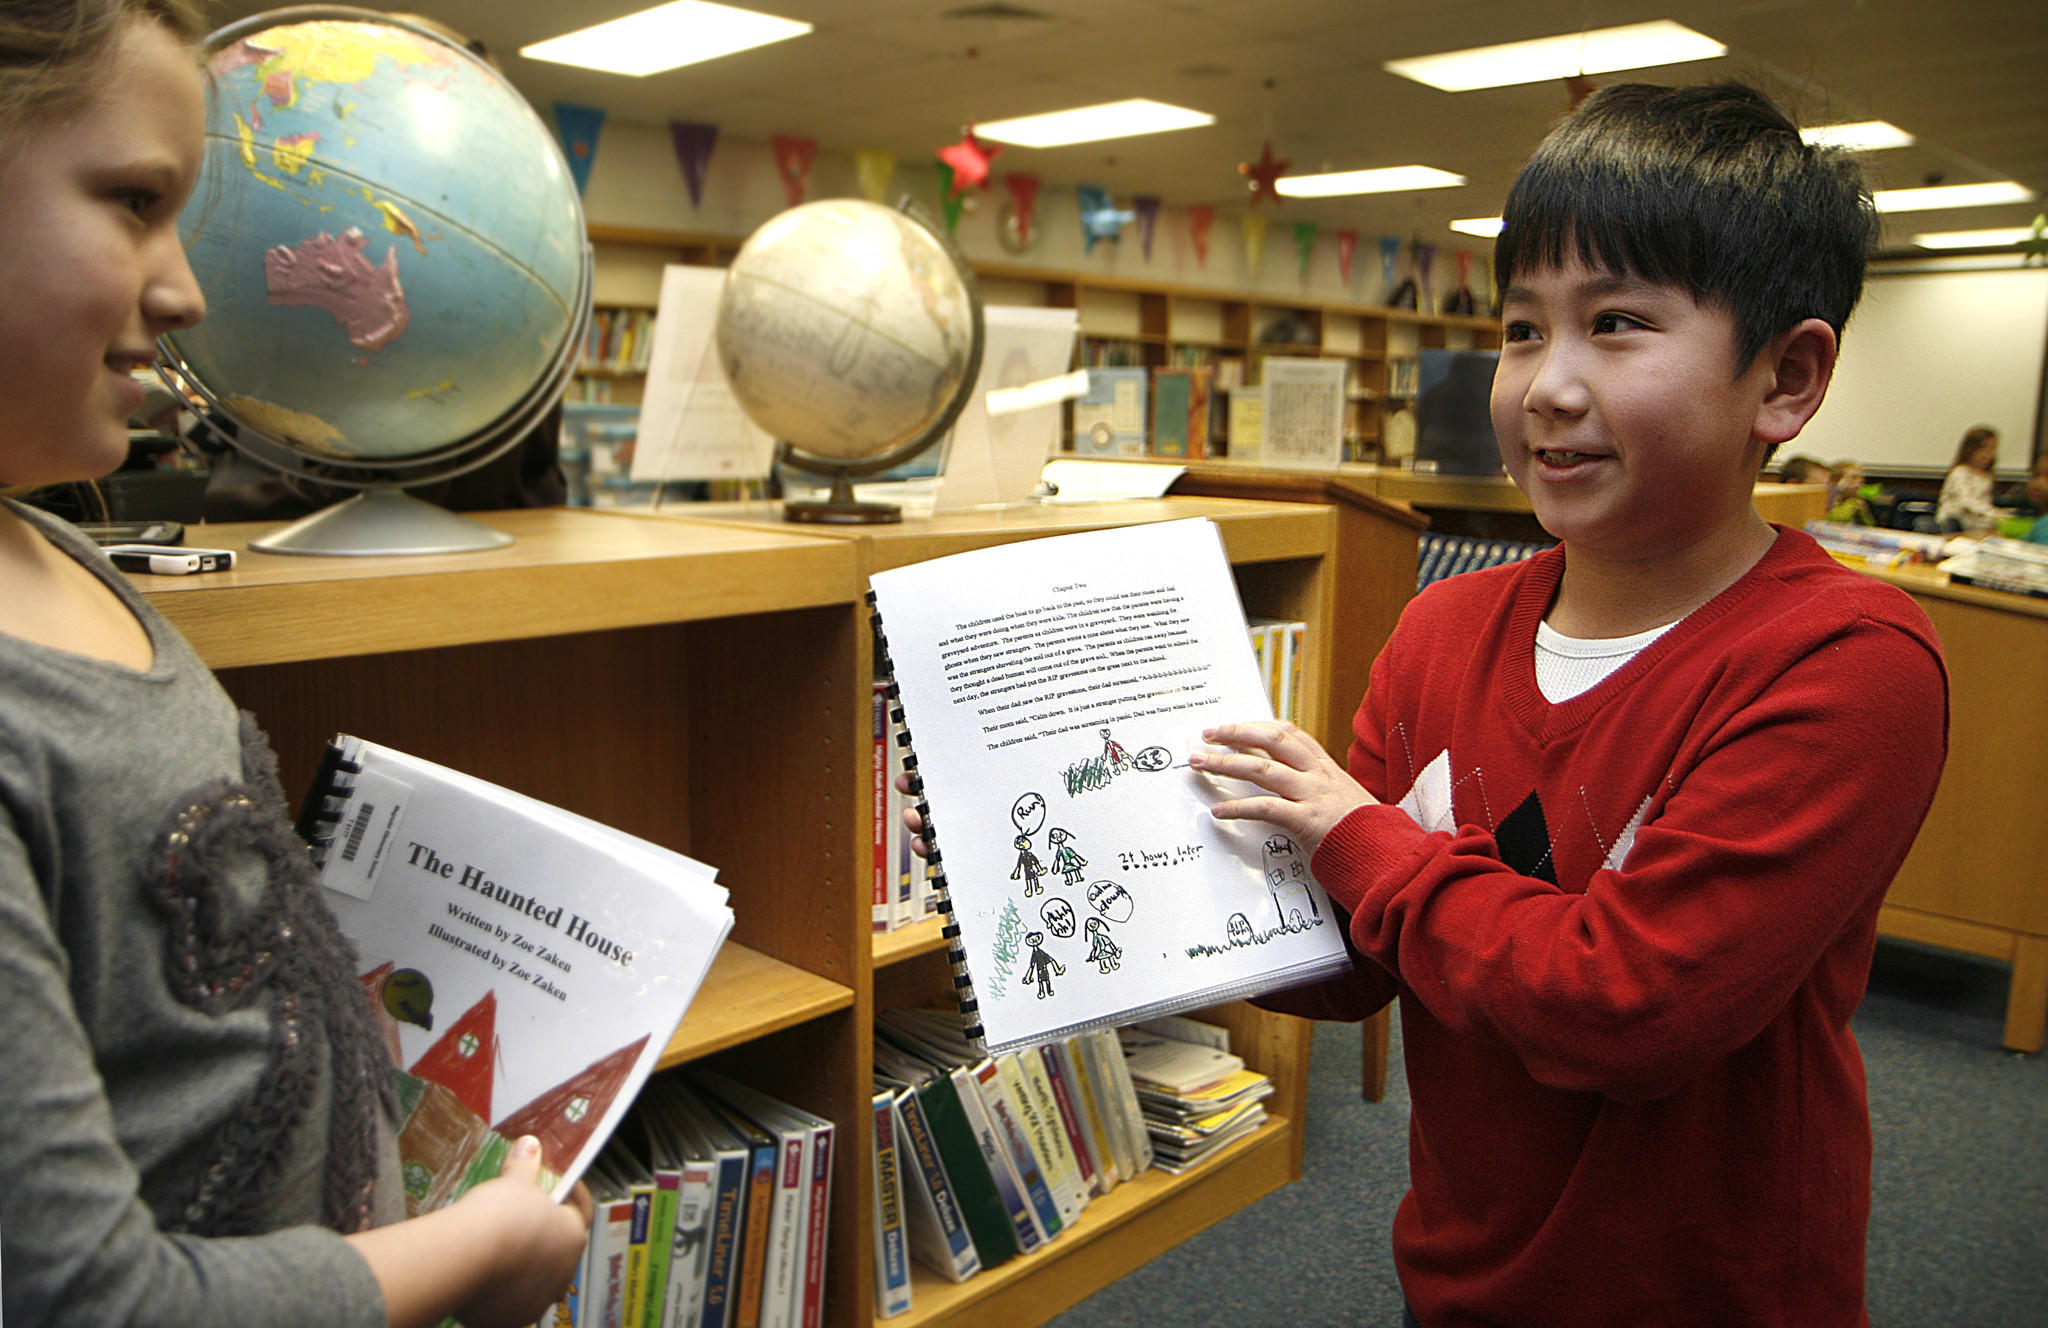 "Magruder Elementary has a program that publishes students' work into books, then places them in the library for other students to check out. Peter Dang, right, shows his book, ""The Lonely Children"" to fellow author Zoe Zaken, who wrote, ""The Haunted House""."